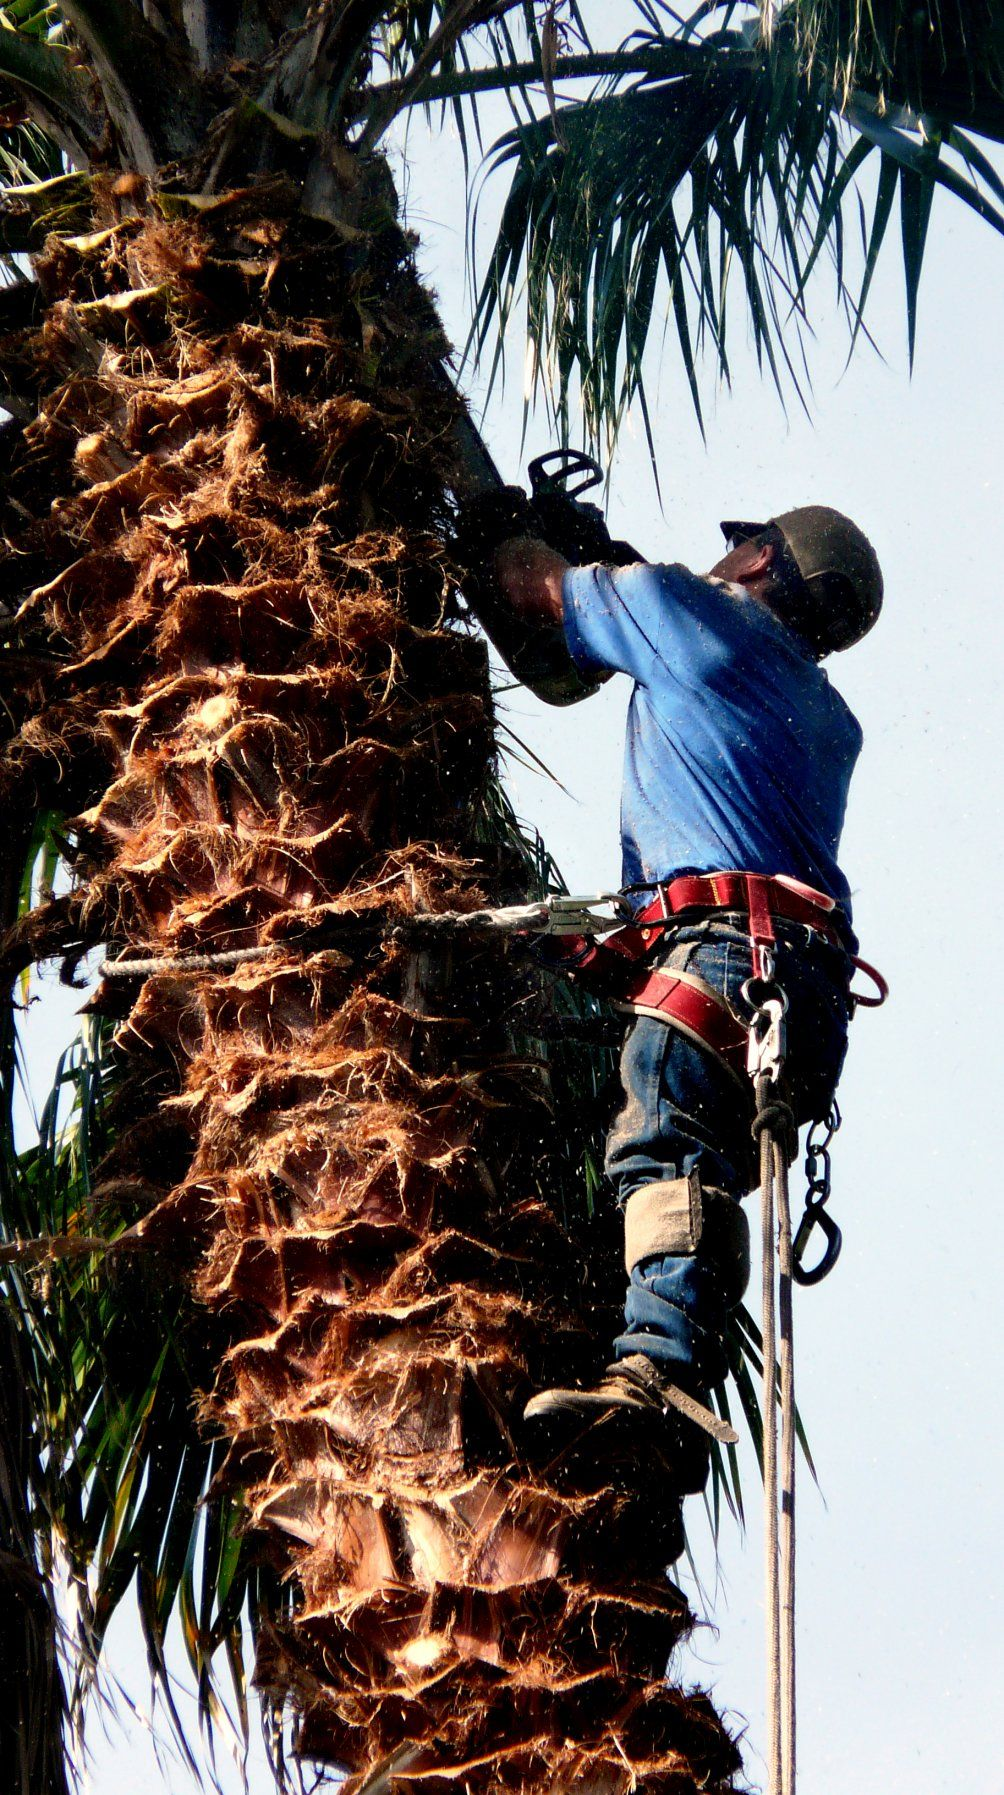 Eric trimming palm tree palm trees